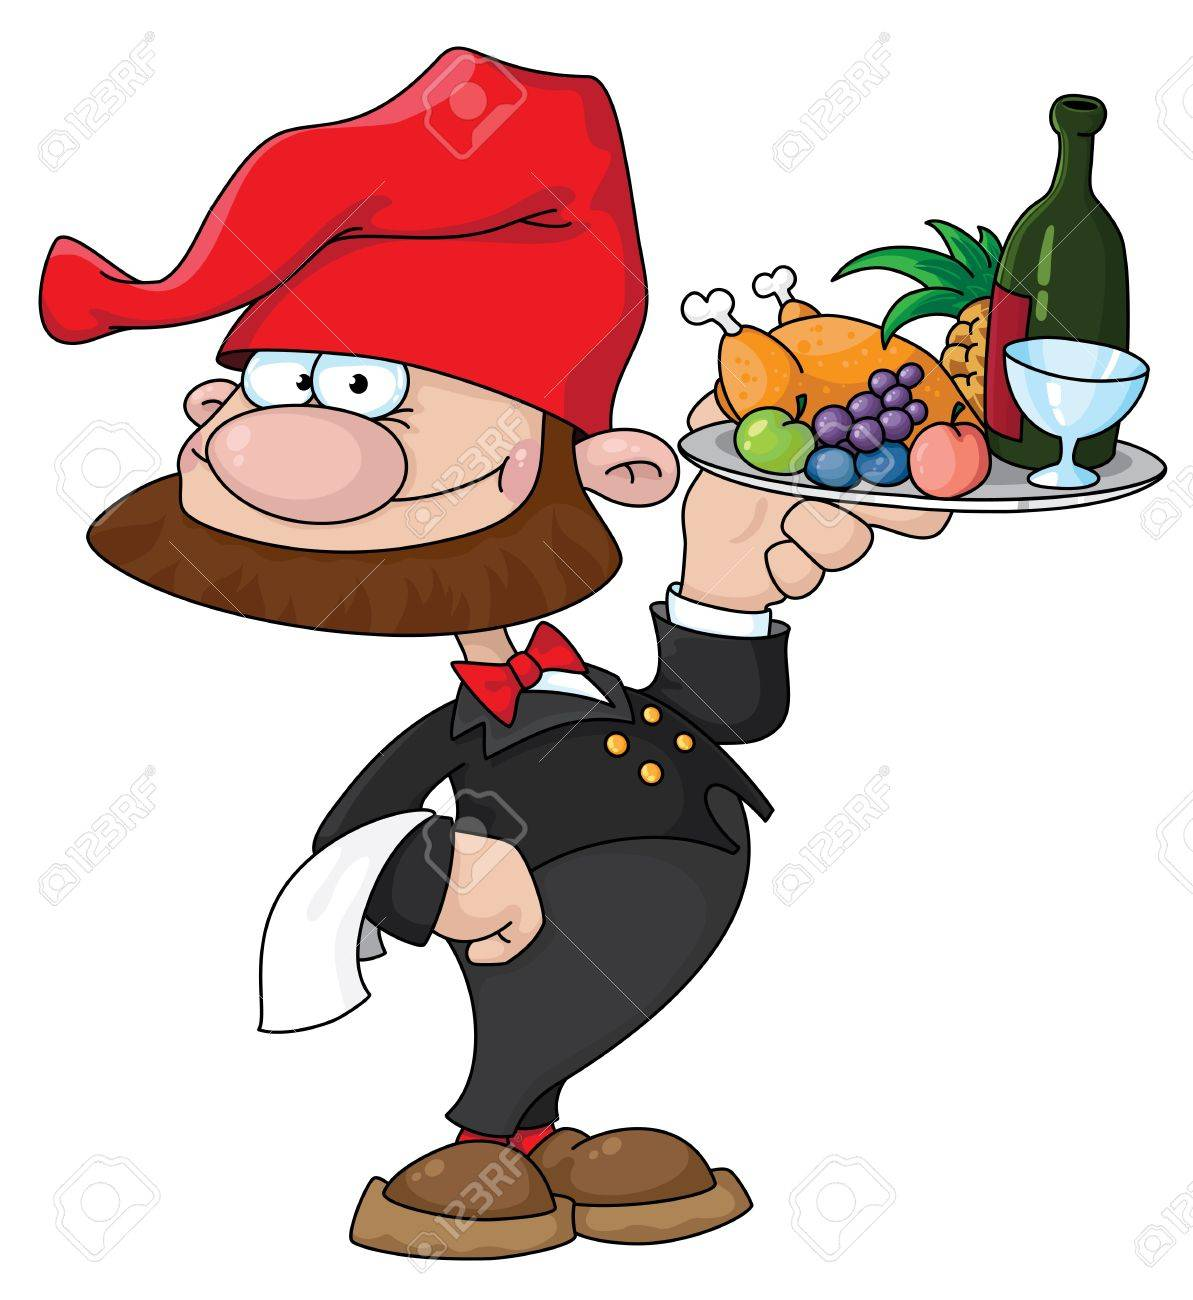 illustration of a waiter gnome with food tray Stock Vector - 11592665